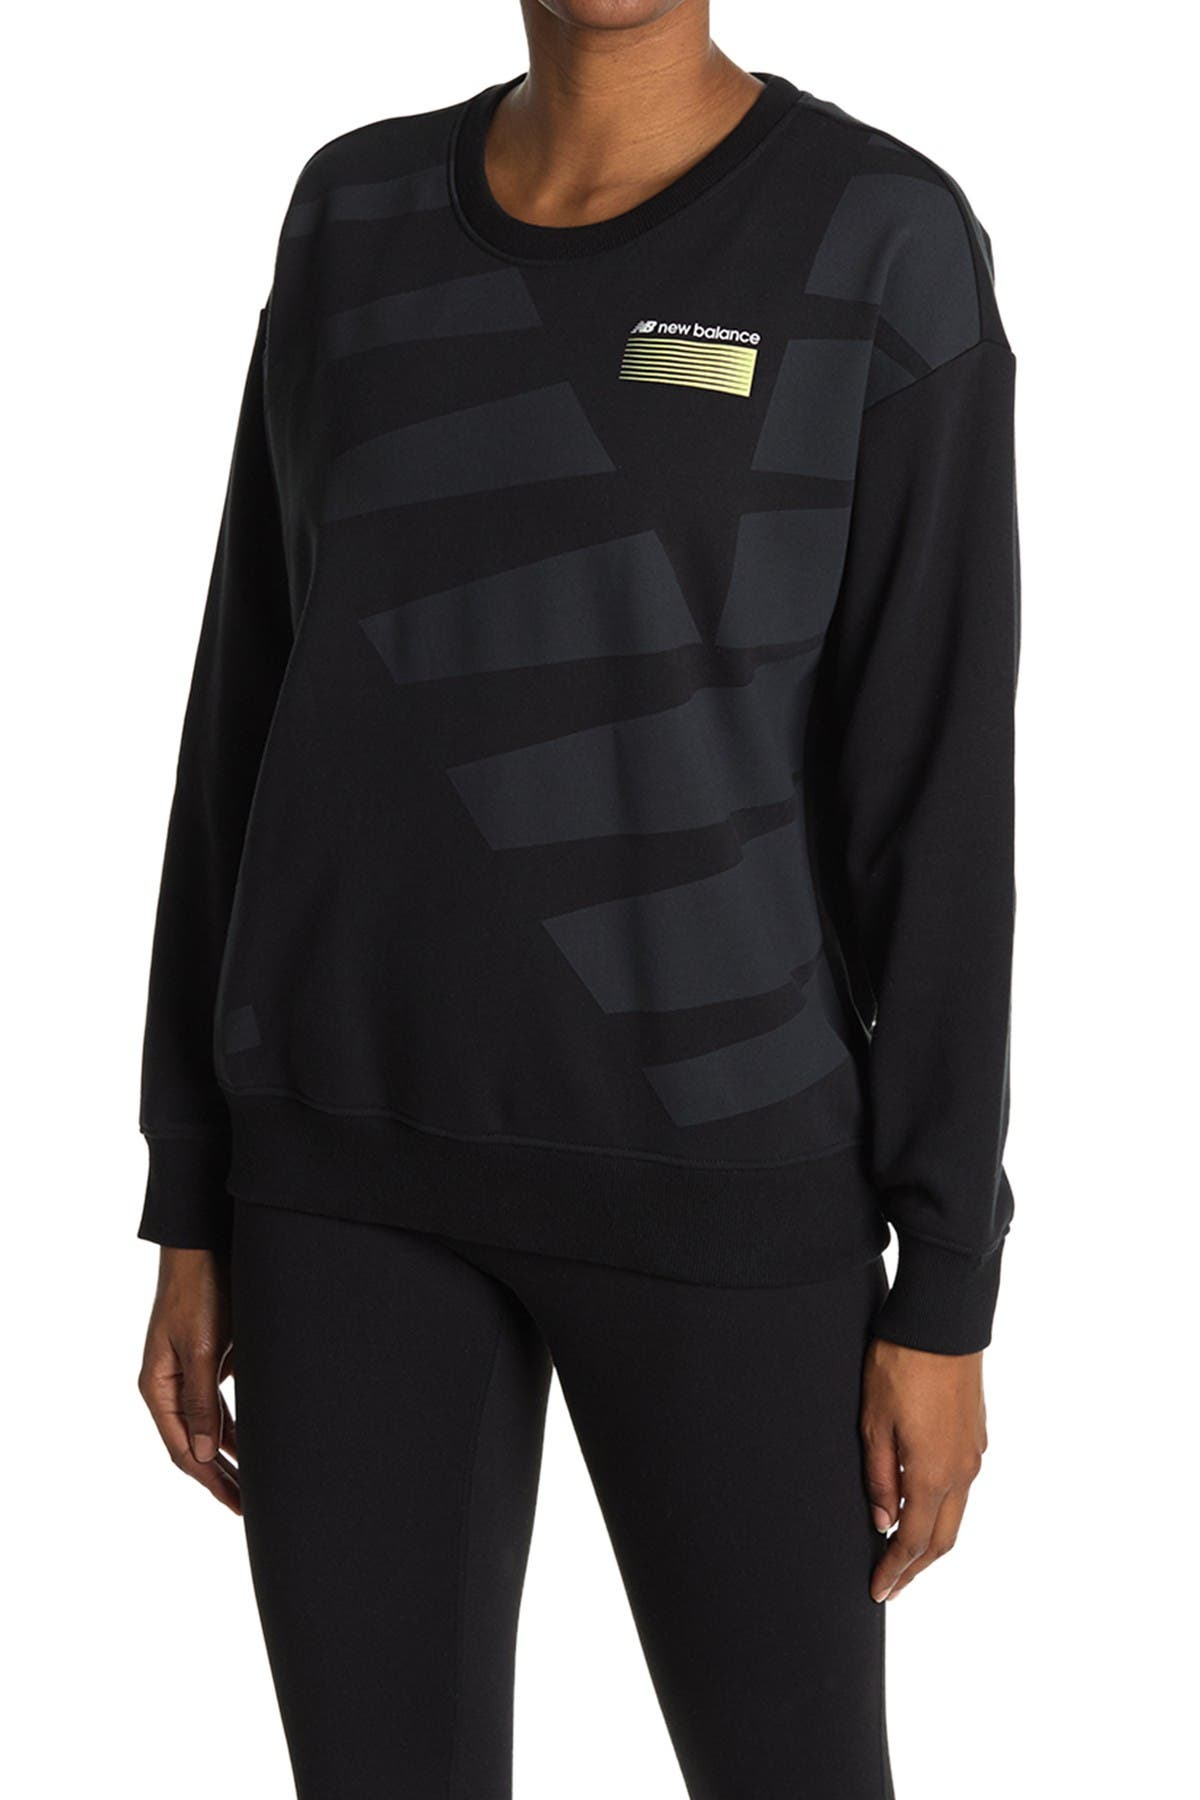 Image of New Balance Optiks Logo Pullover Sweatshirt